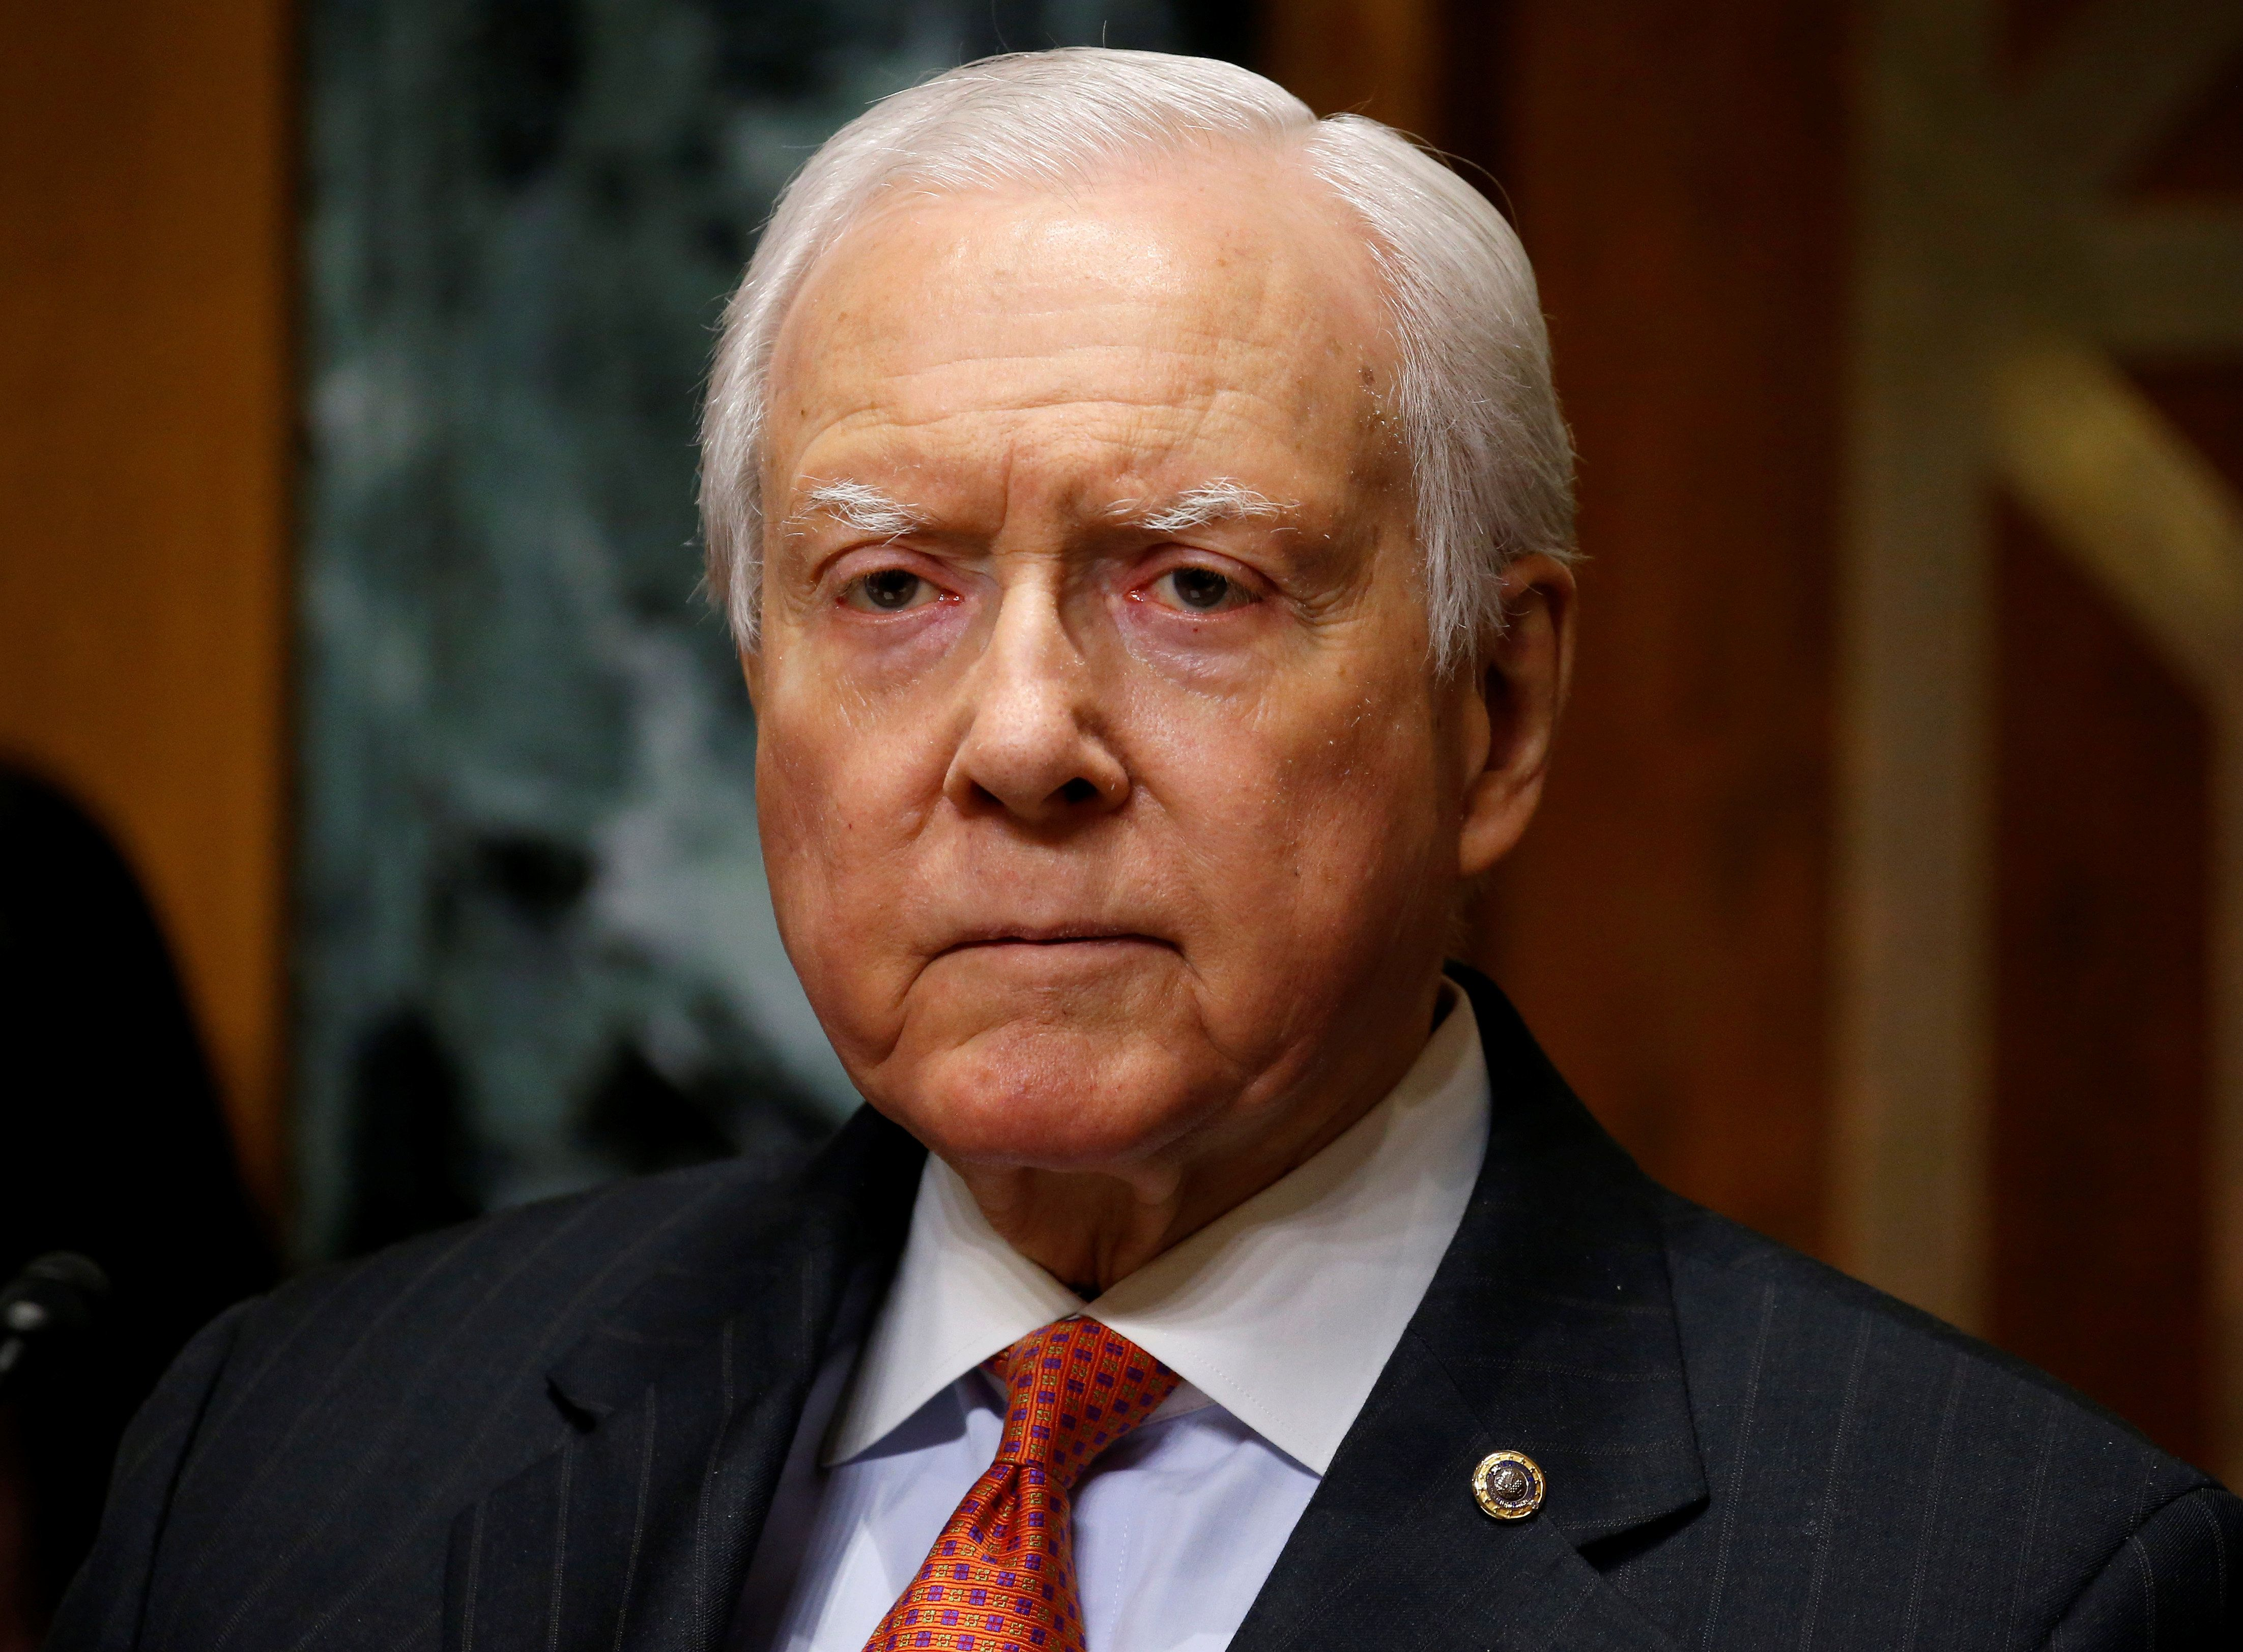 Chairman of the Senate Finance Committee Orrin Hatch (R-UT) listens as Alex Azar II testifies on his nomination to be Health and Human Services secretary in Washington, U.S., January 9, 2018.   REUTERS/Joshua Roberts